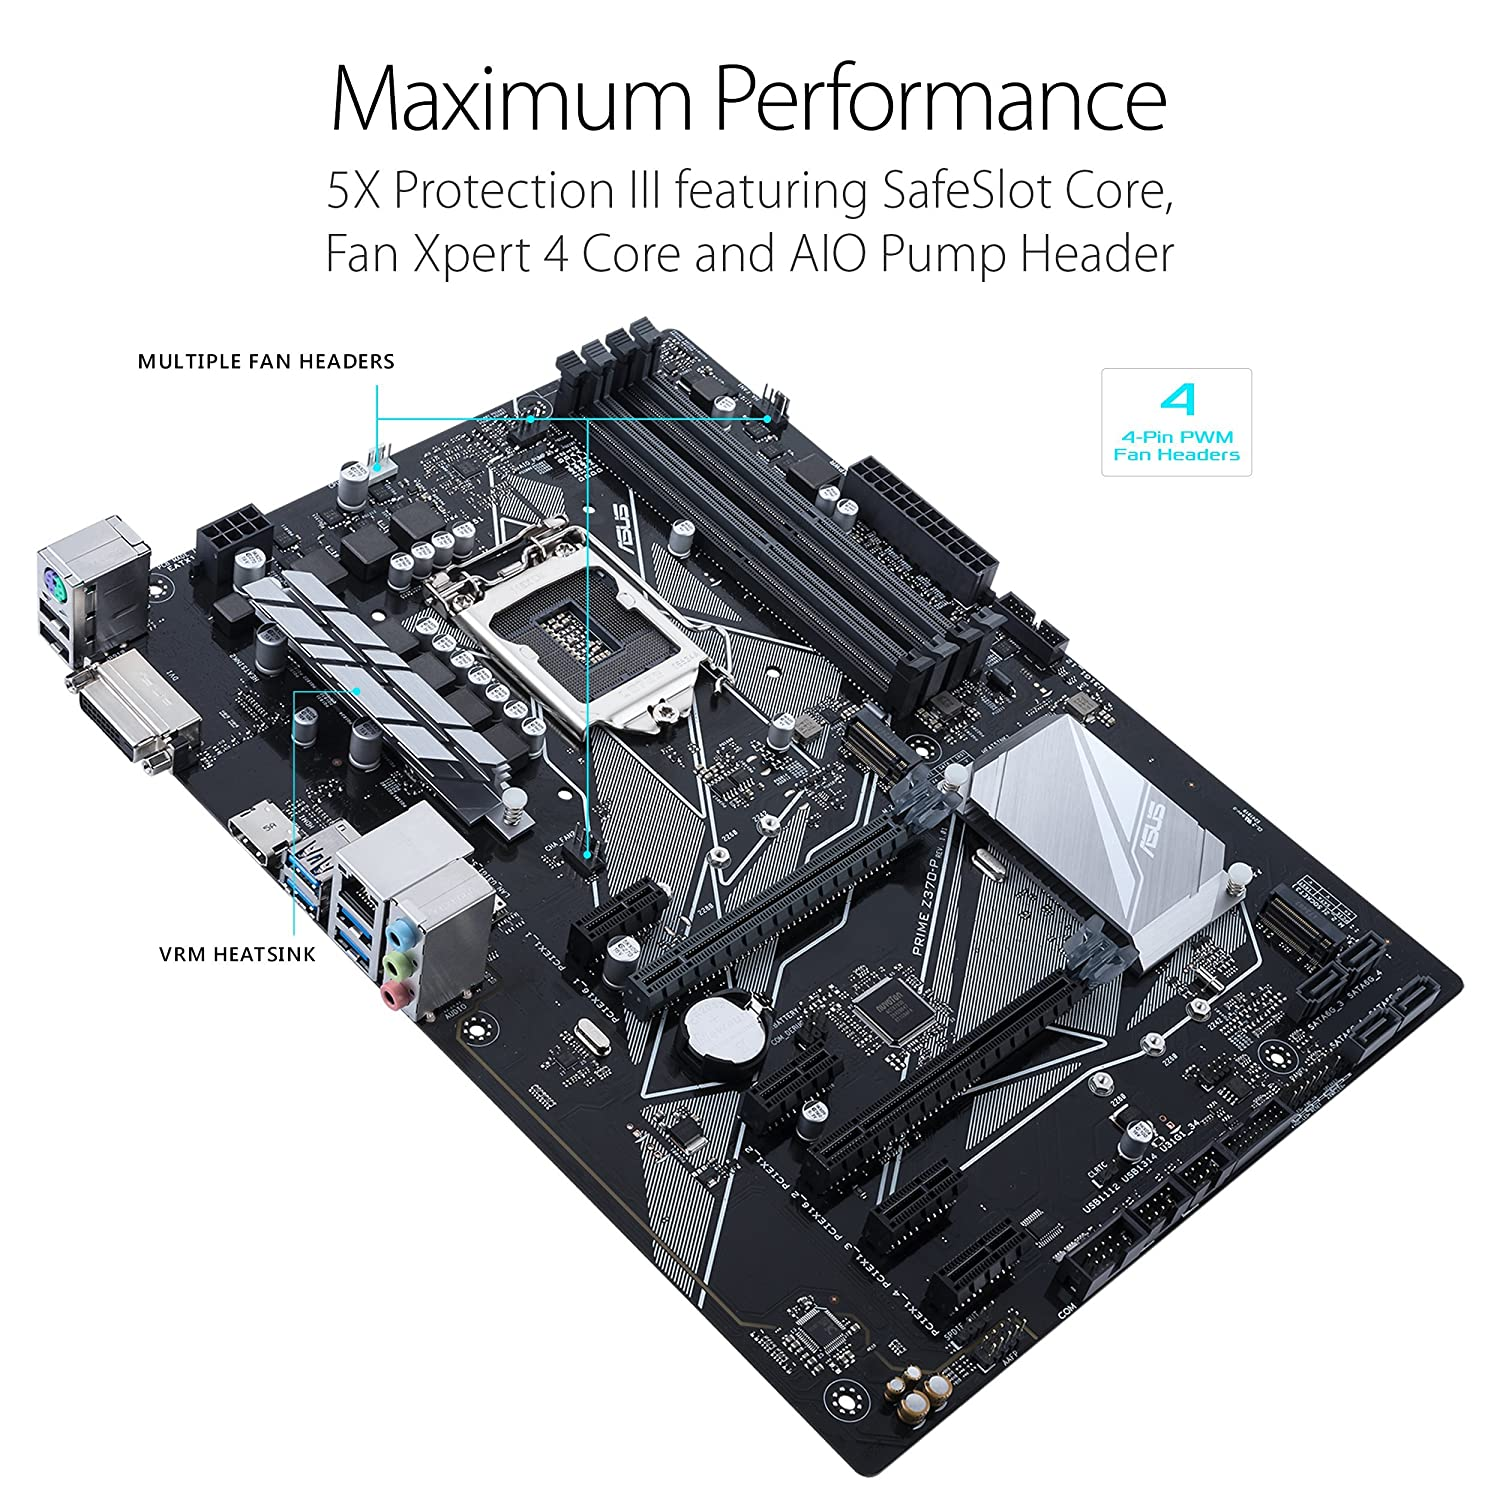 Asus Prime Z370 P Lga1151 Ddr4 Hdmi Dvi M2 Atx Motherboard Layout Diagram 3 With Usb 31 For 8th Generation Intel Core Processors Computers Accessories